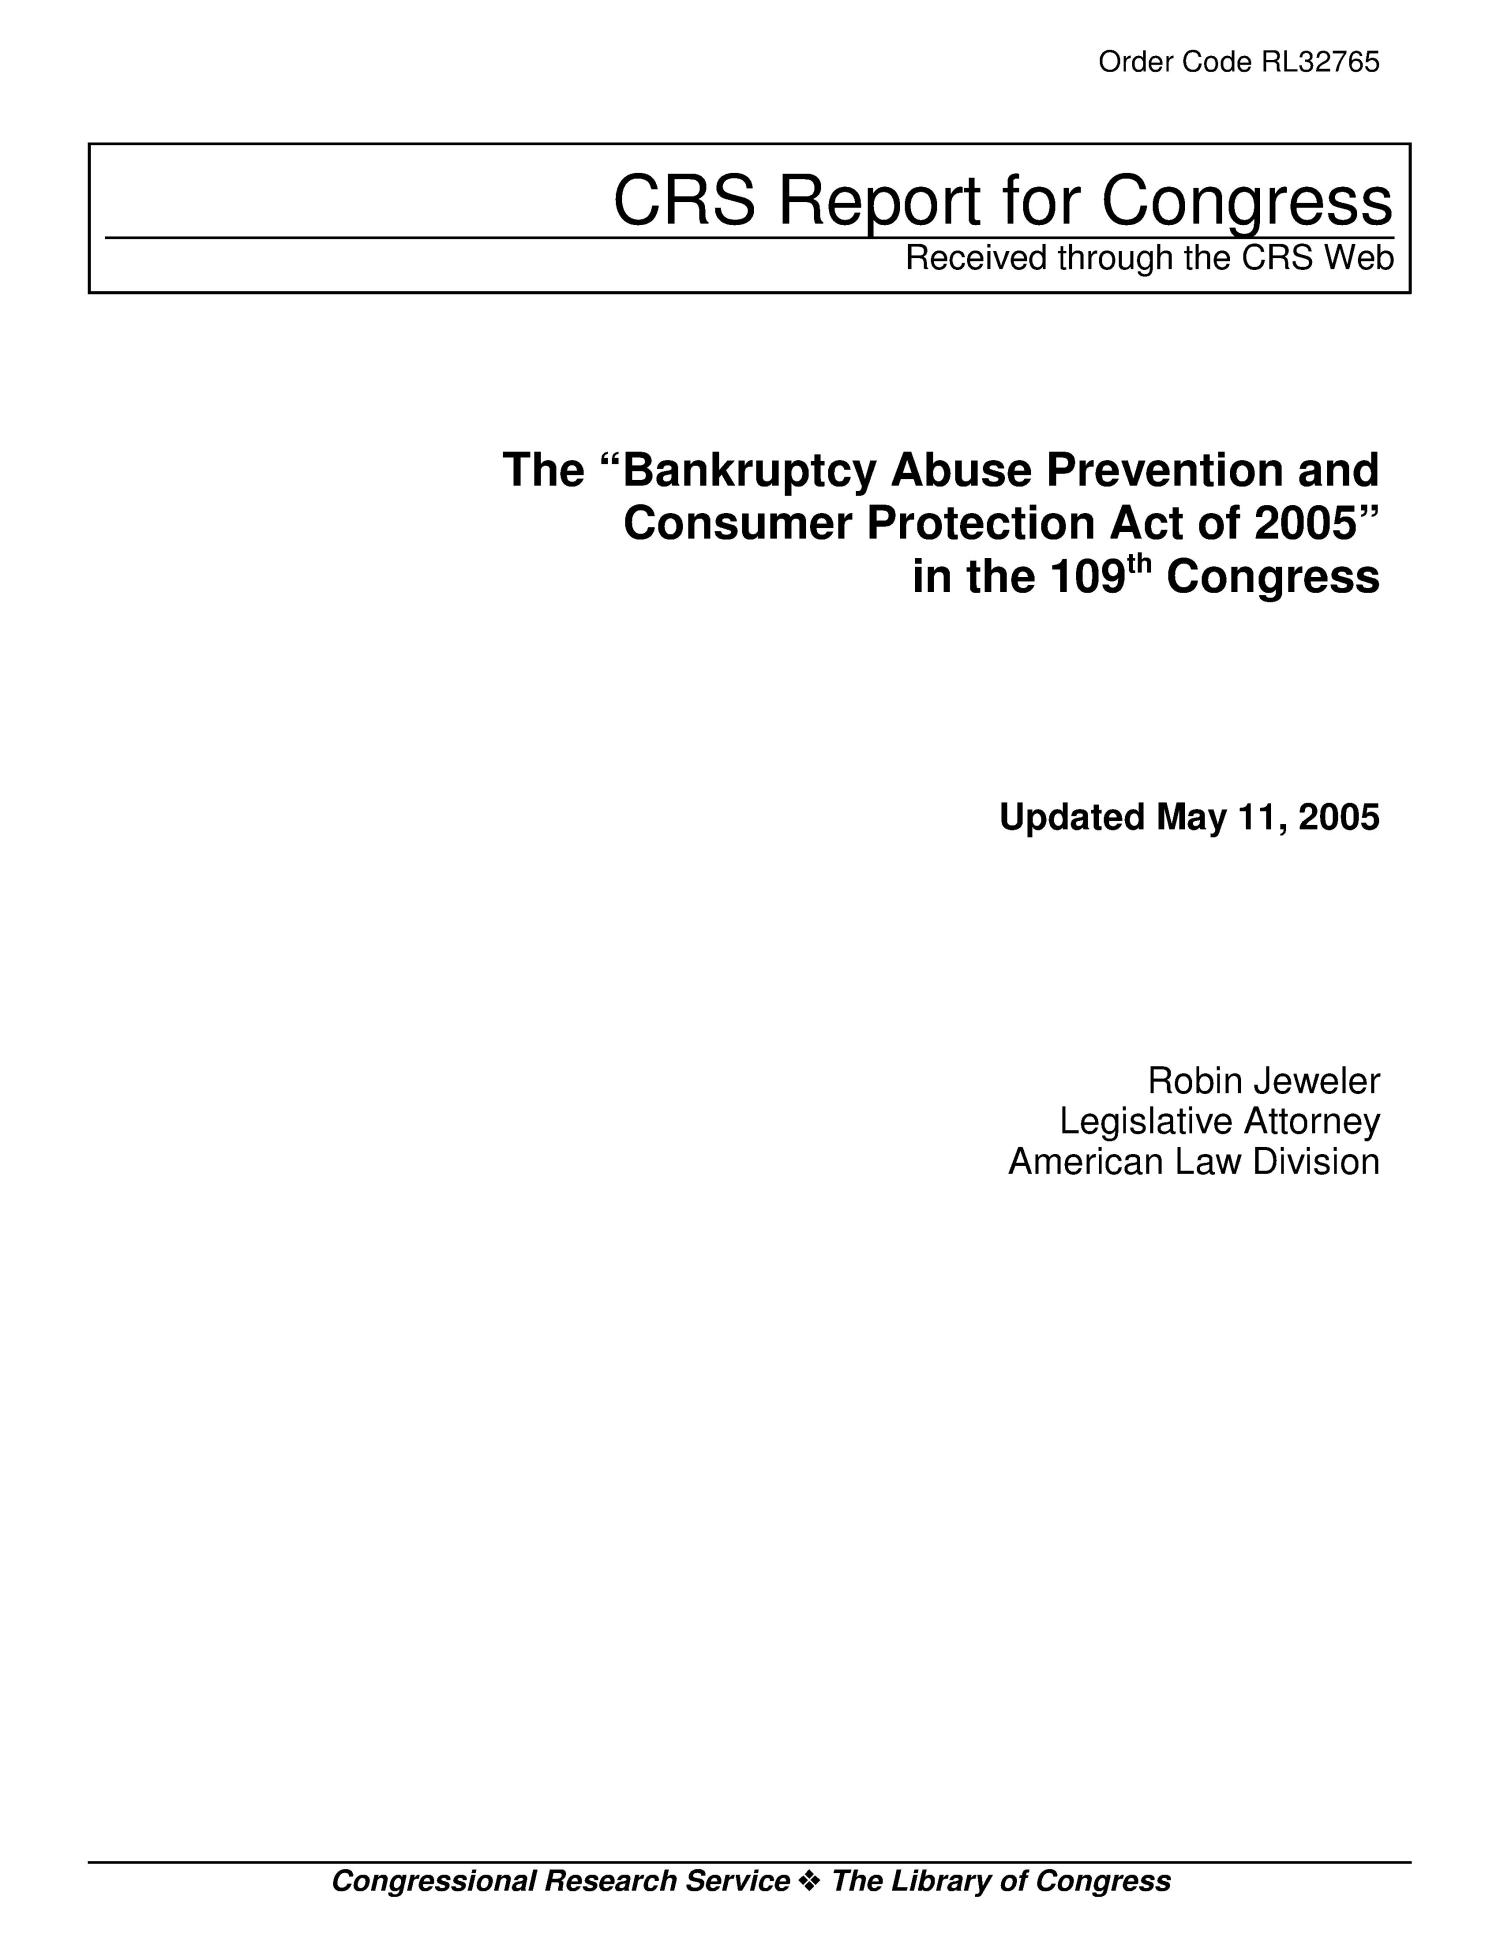 "The ""Bankruptcy Abuse Prevention and Consumer Protection Act of 2005"" in the 109th Congress                                                                                                      [Sequence #]: 1 of 18"